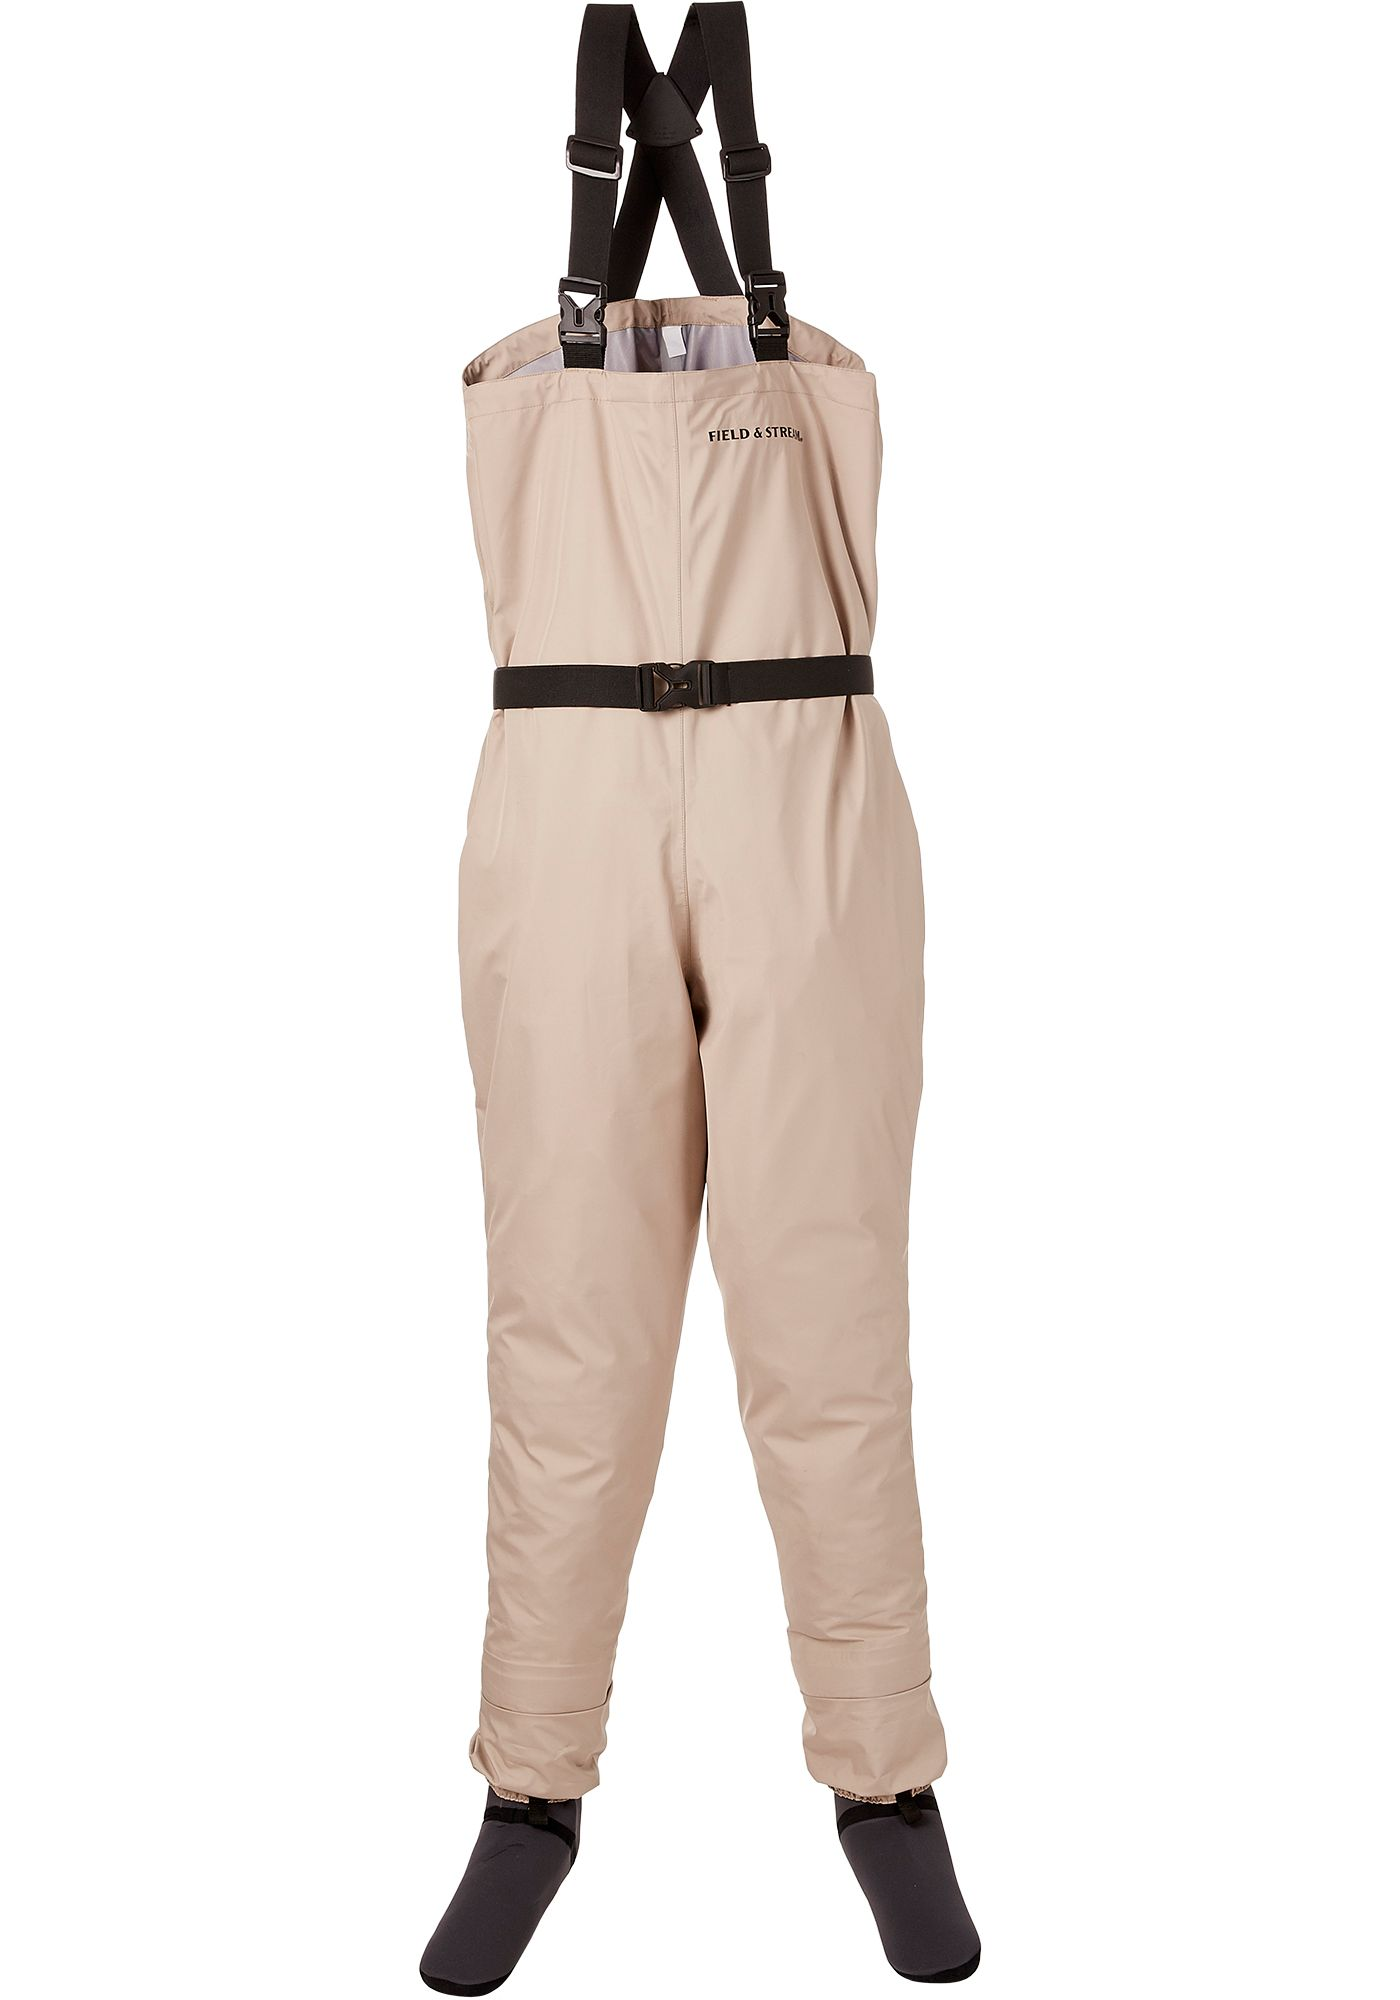 Field & Stream Sportsman Breathable Chest Waders